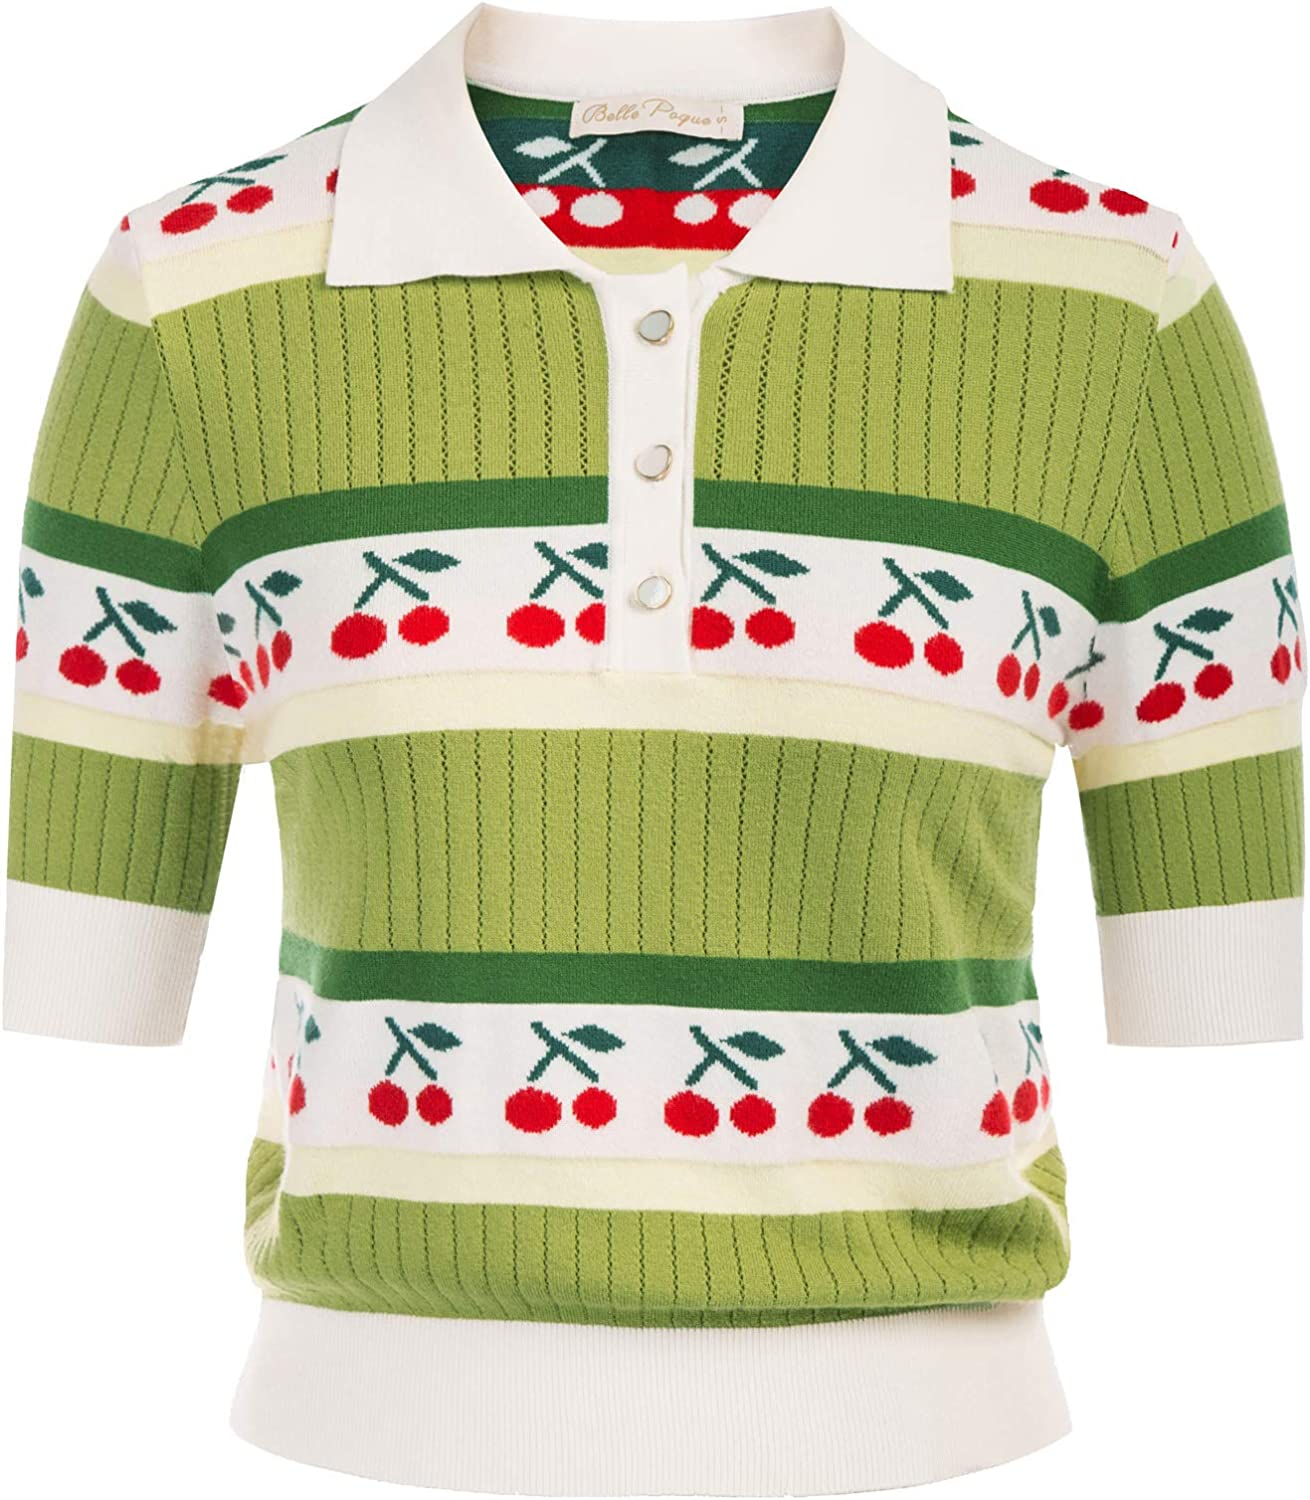 Belle Poque Women Vintage Embroidery Sweater Retro 1940s Contrast Collar Jumper Tops